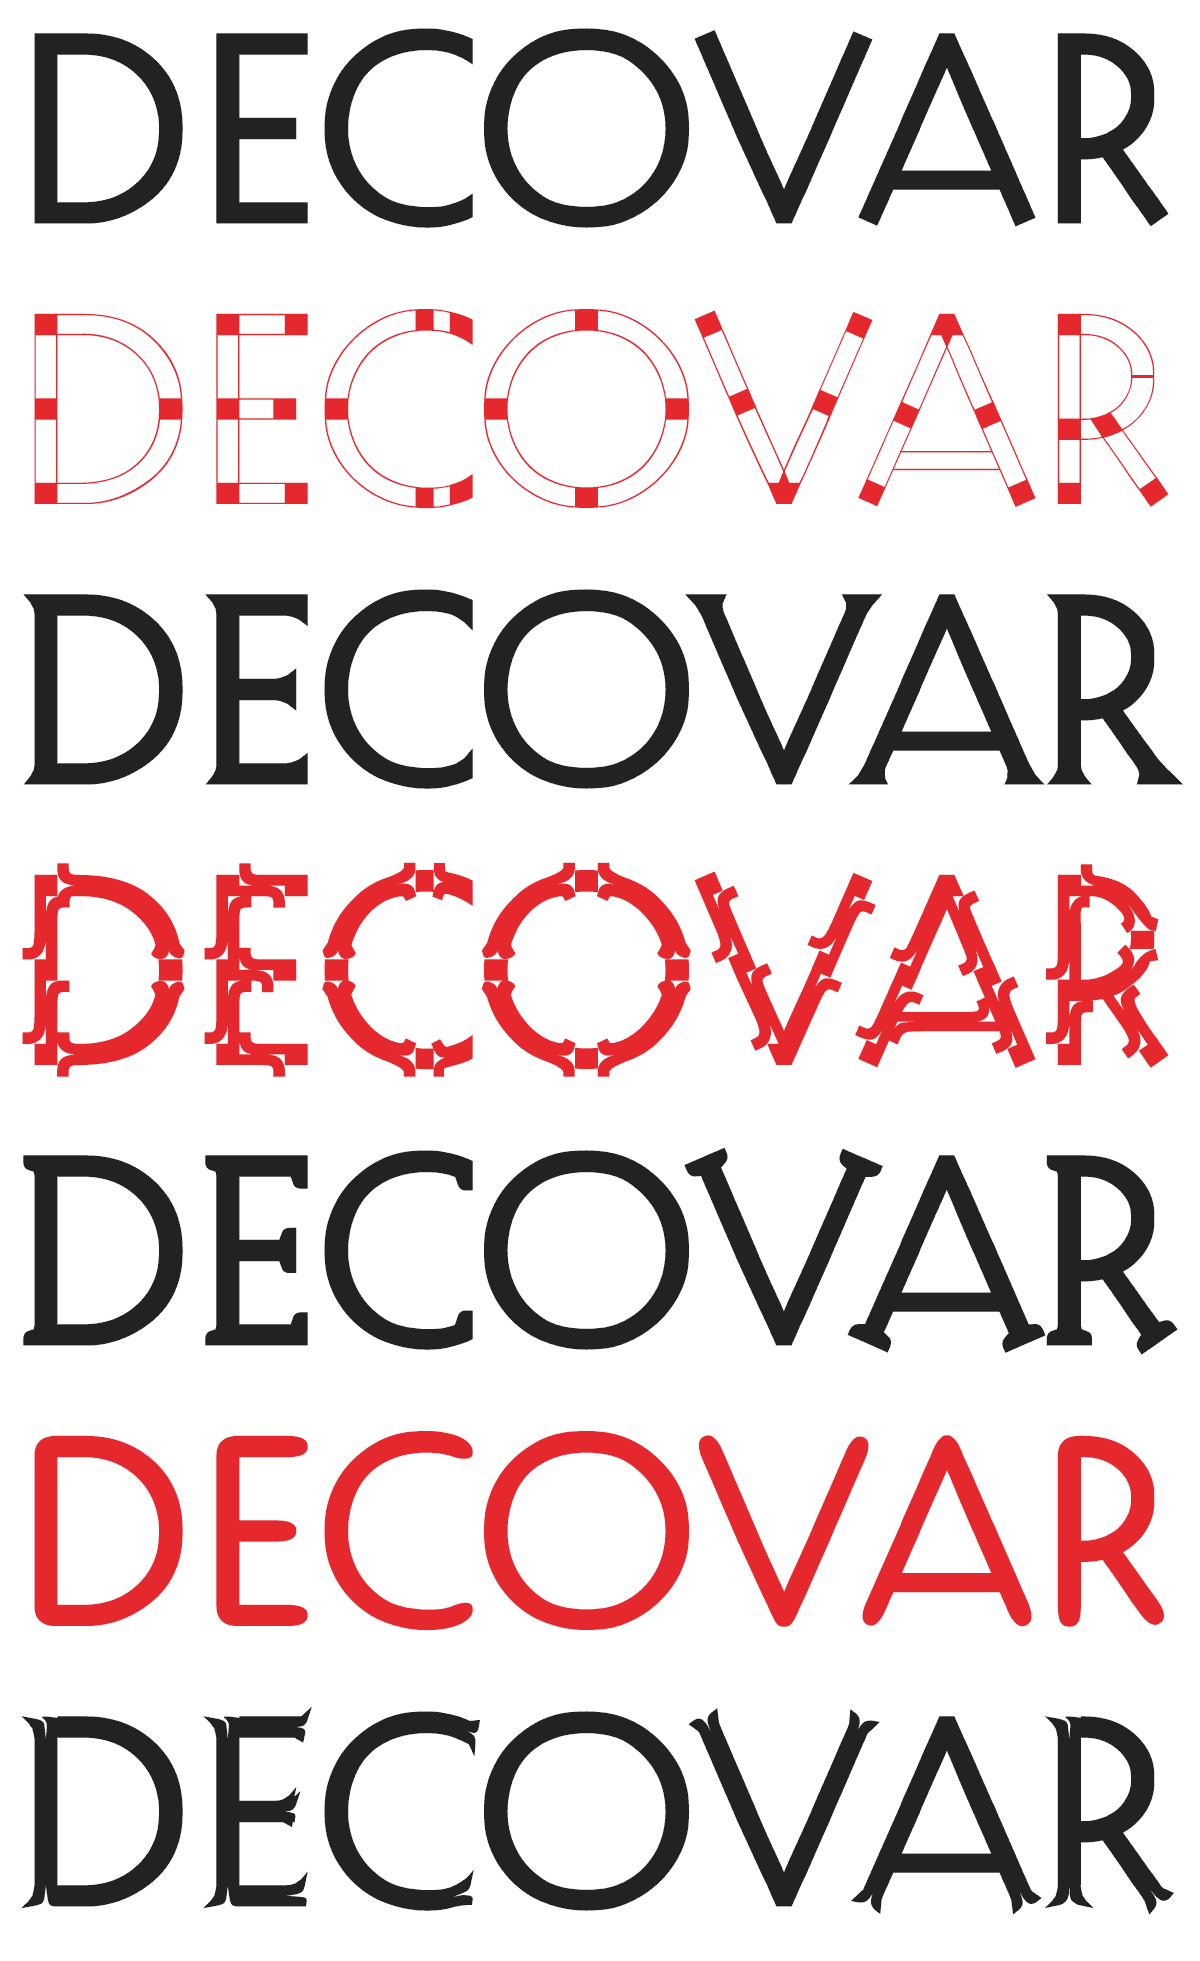 Examples of Decovar